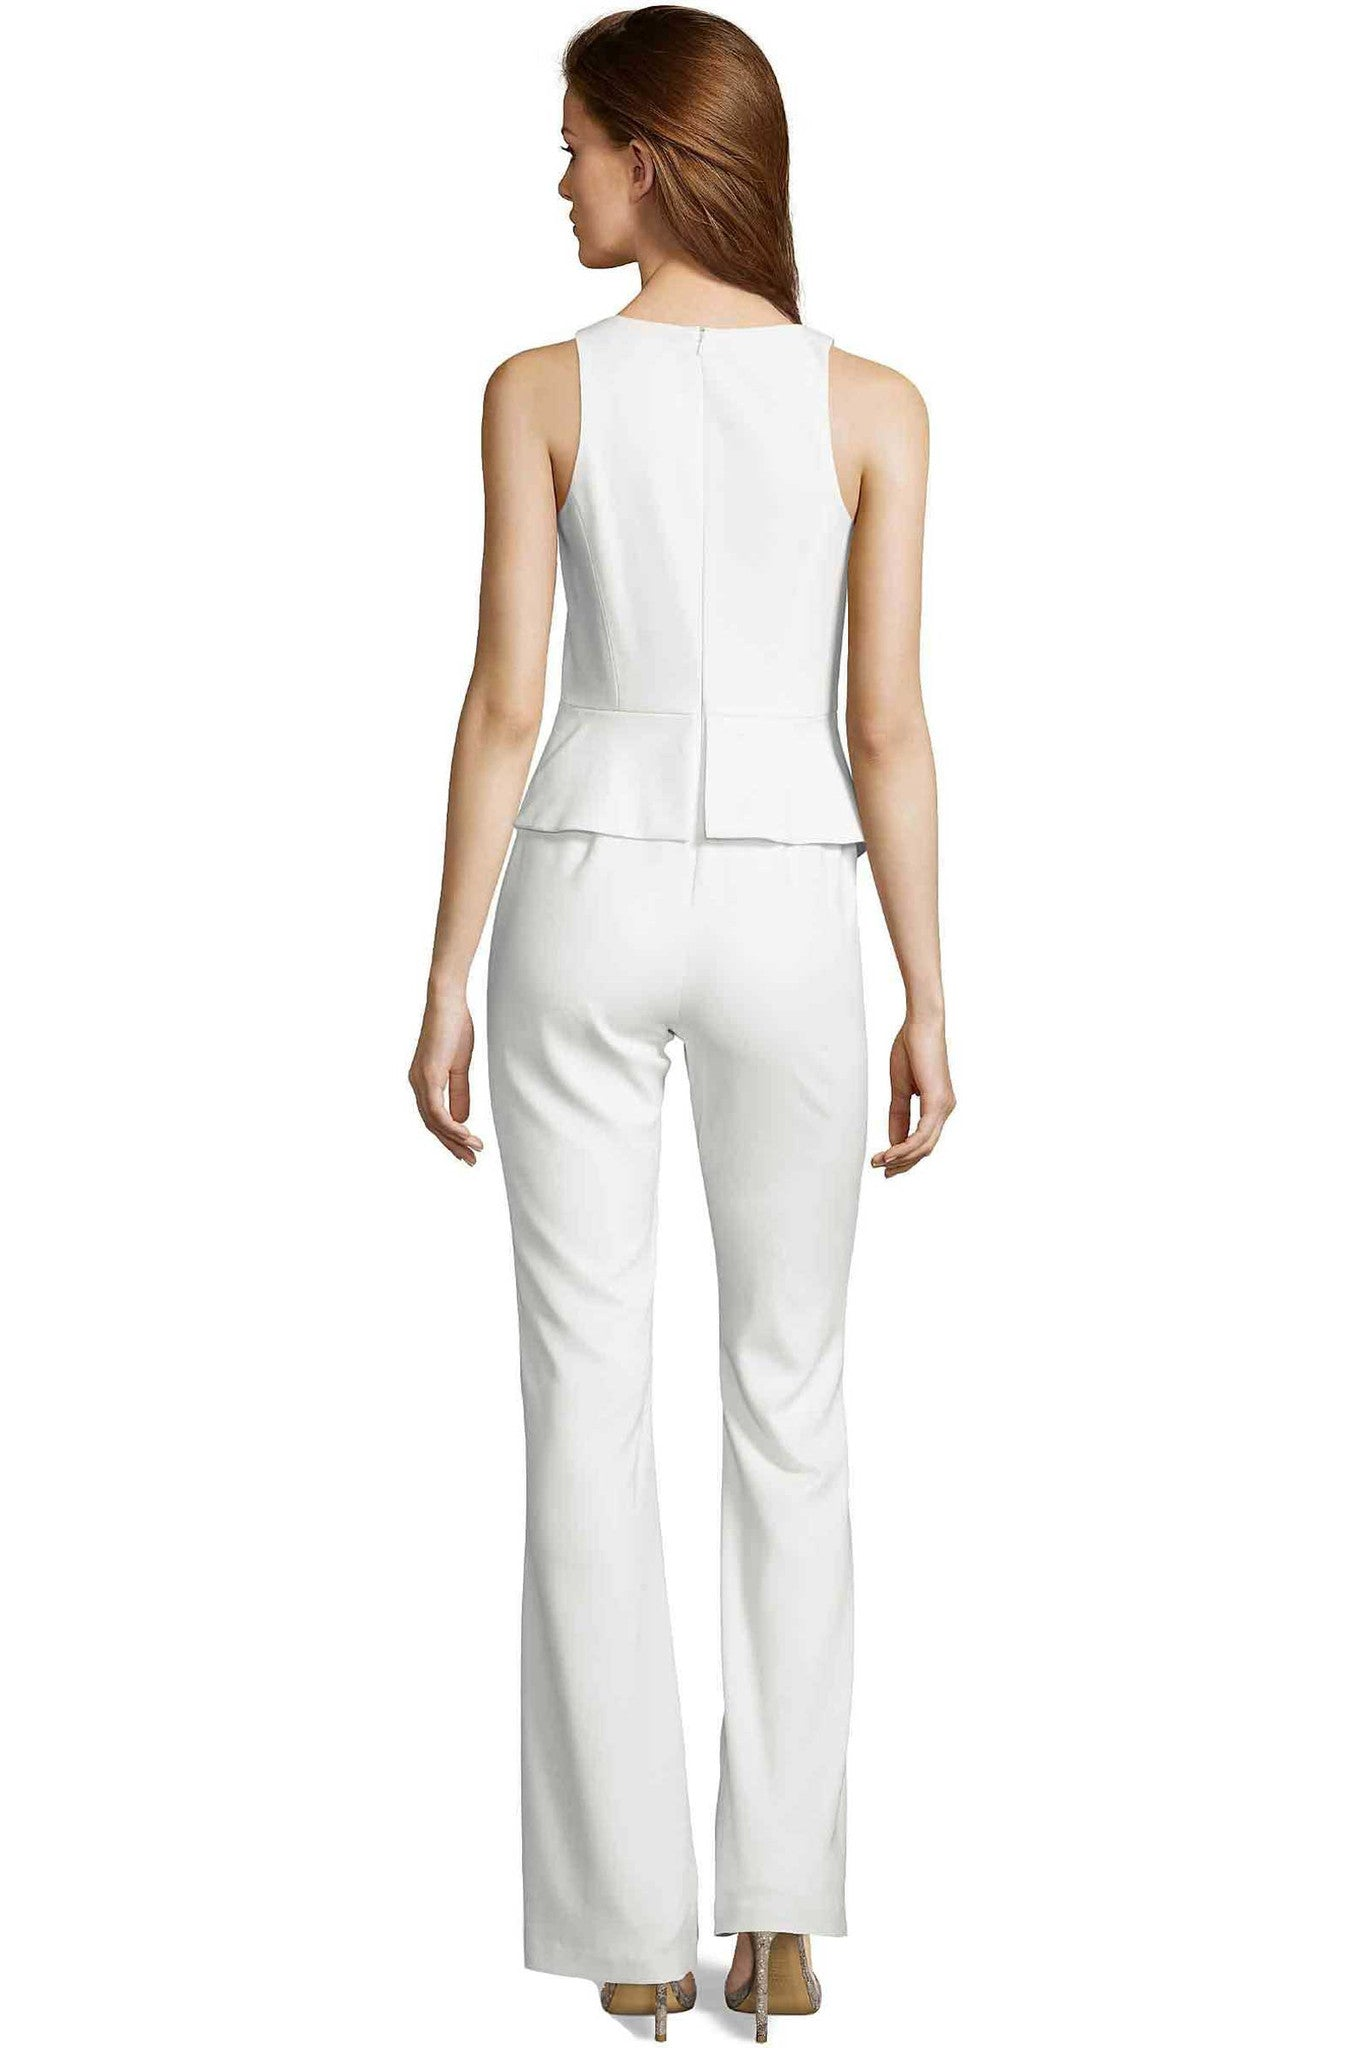 MCMURRAY LIGHT IVORY JUMPSUIT